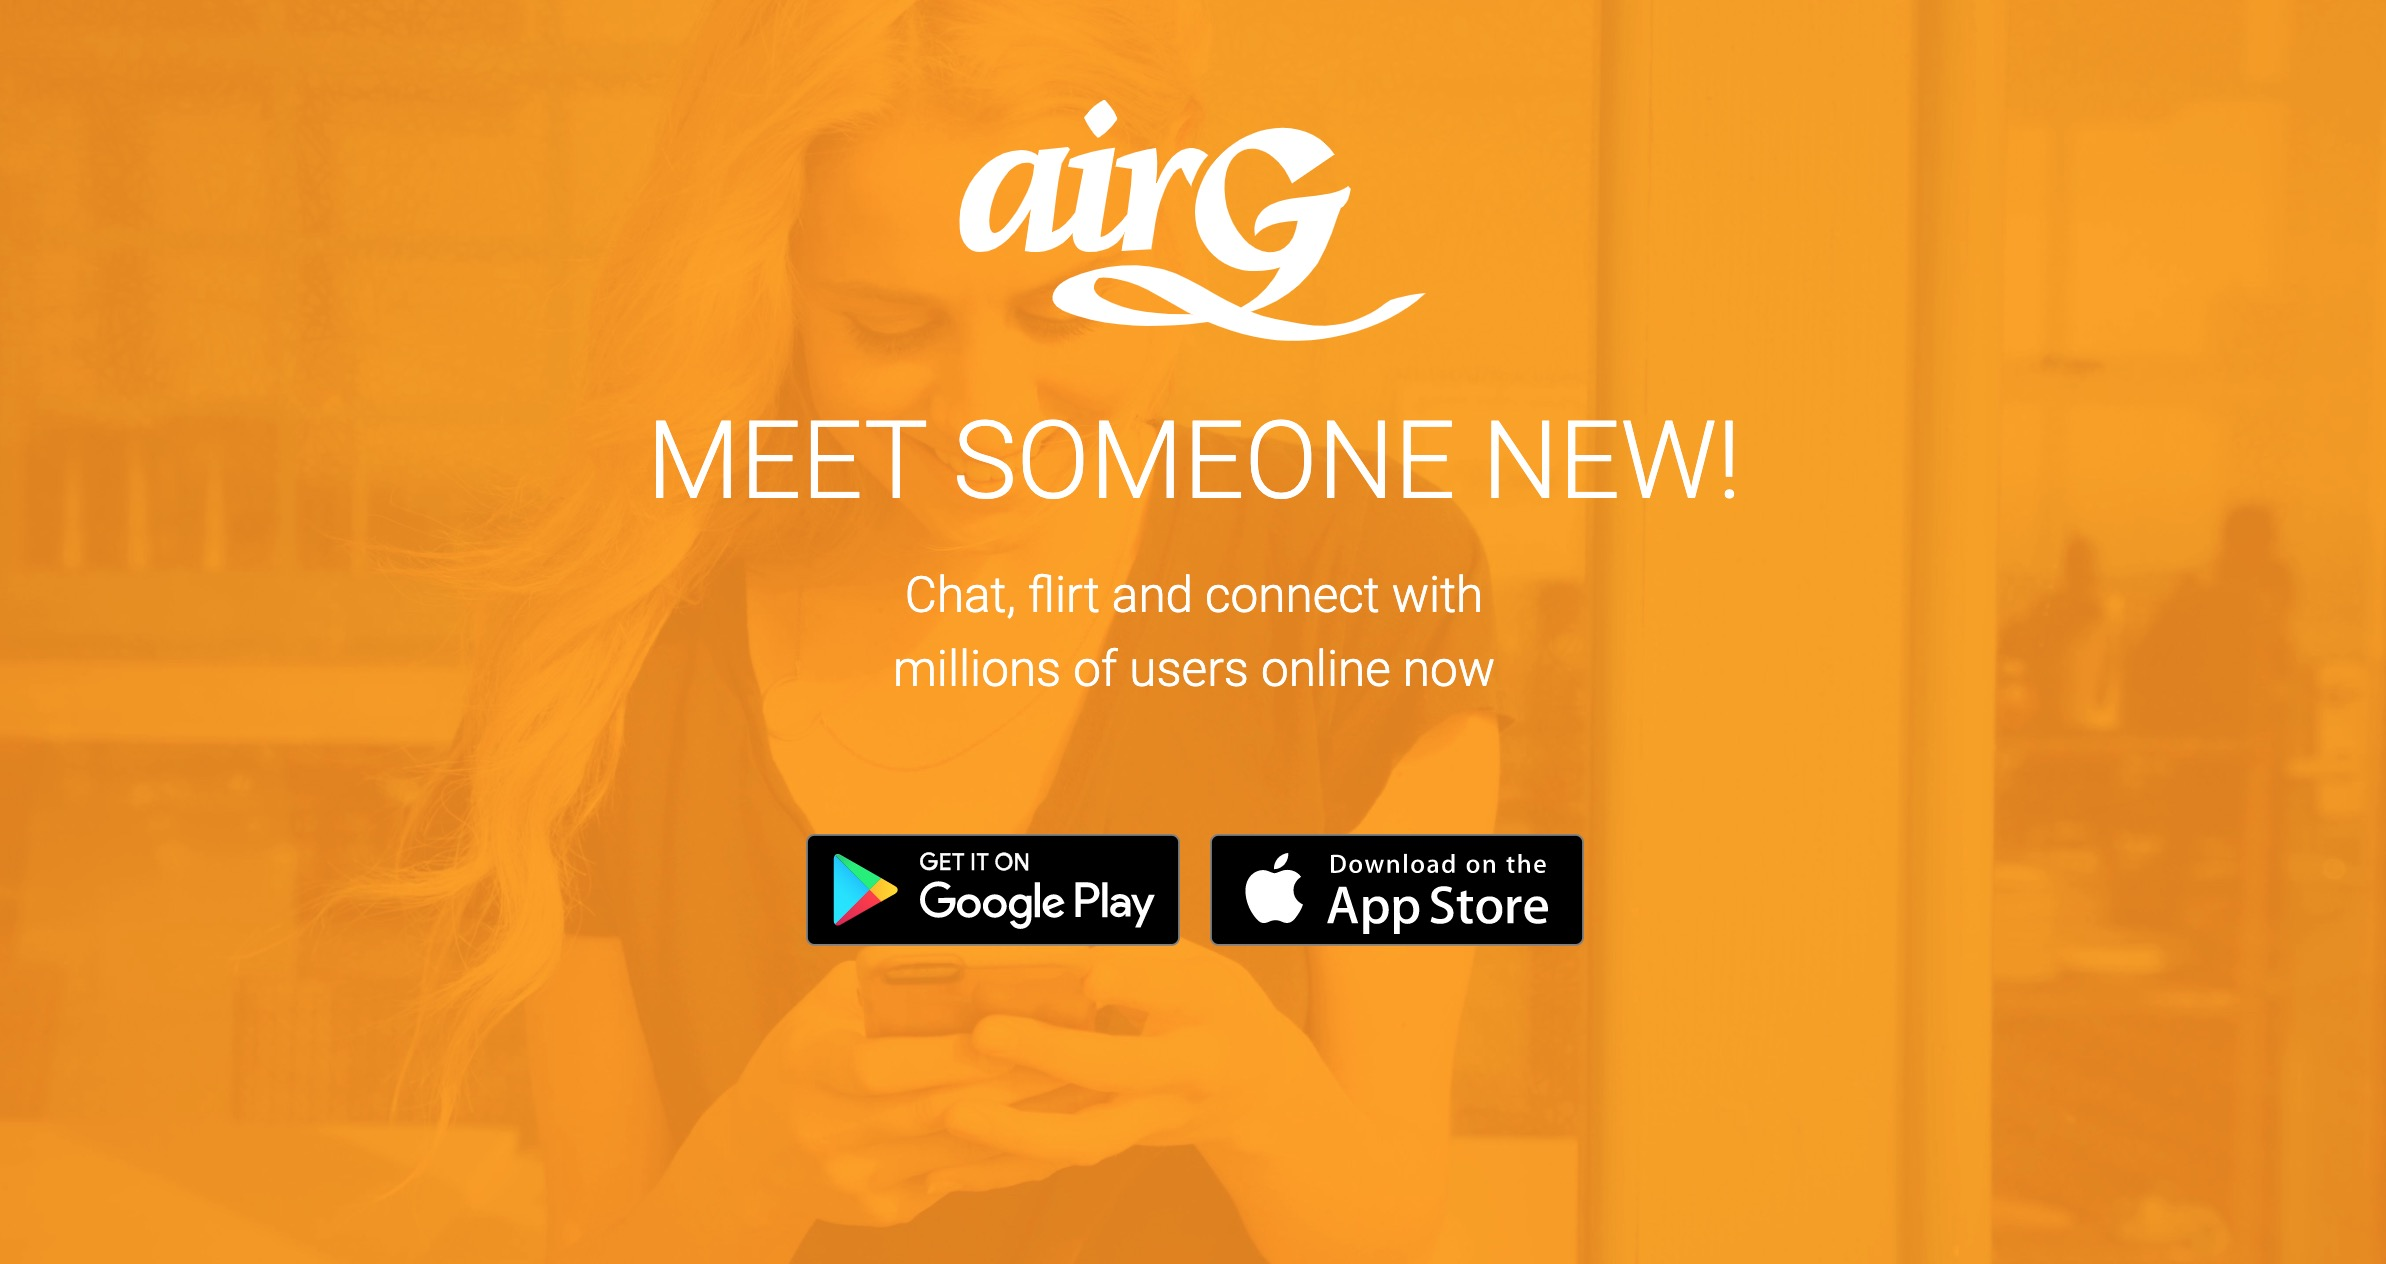 AirG home page